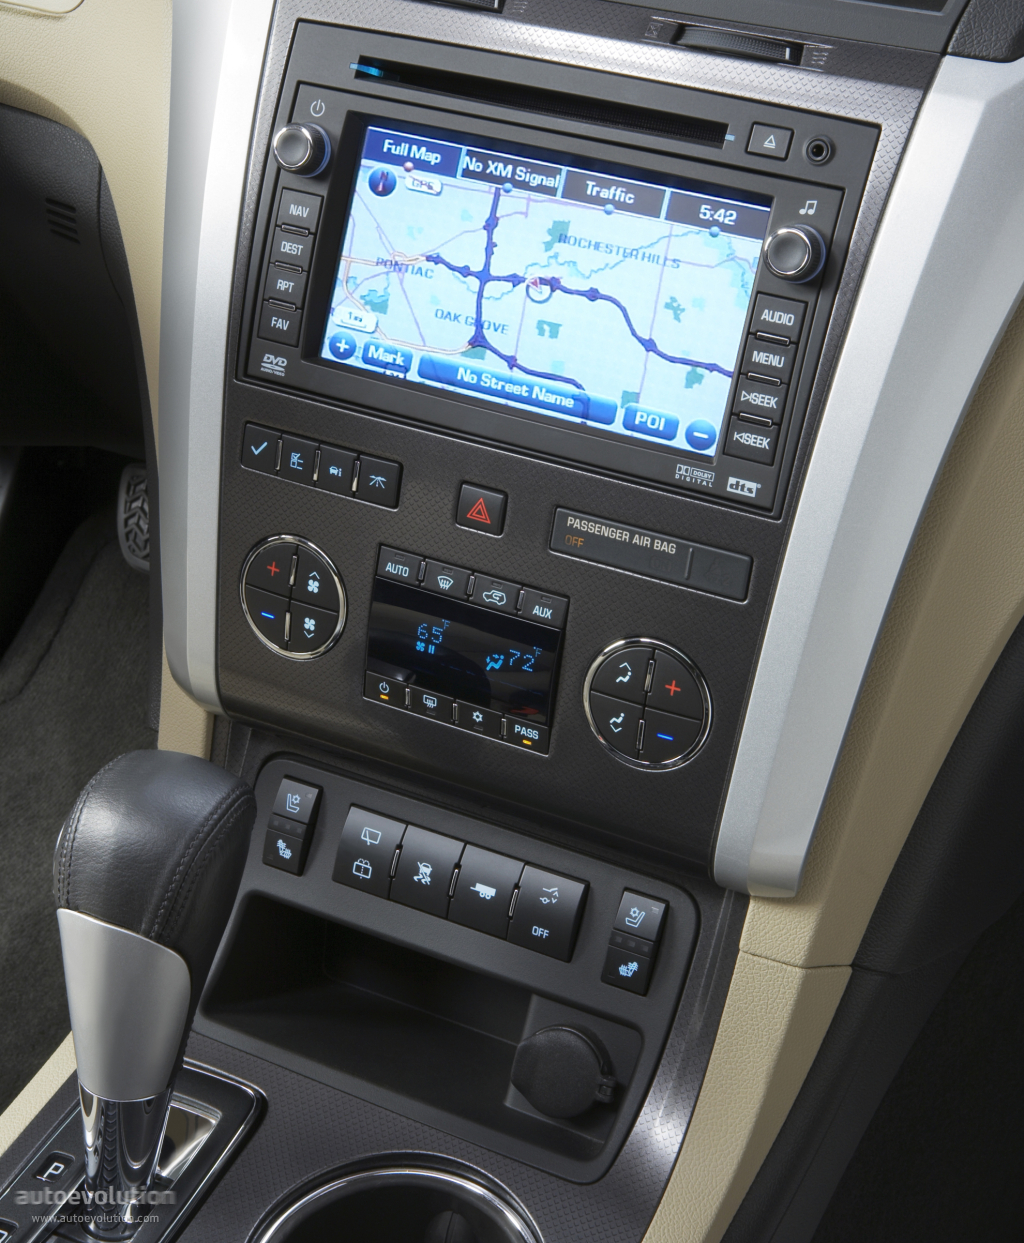 2012 Chevrolet Traverse Interior: CHEVROLET Traverse Specs & Photos